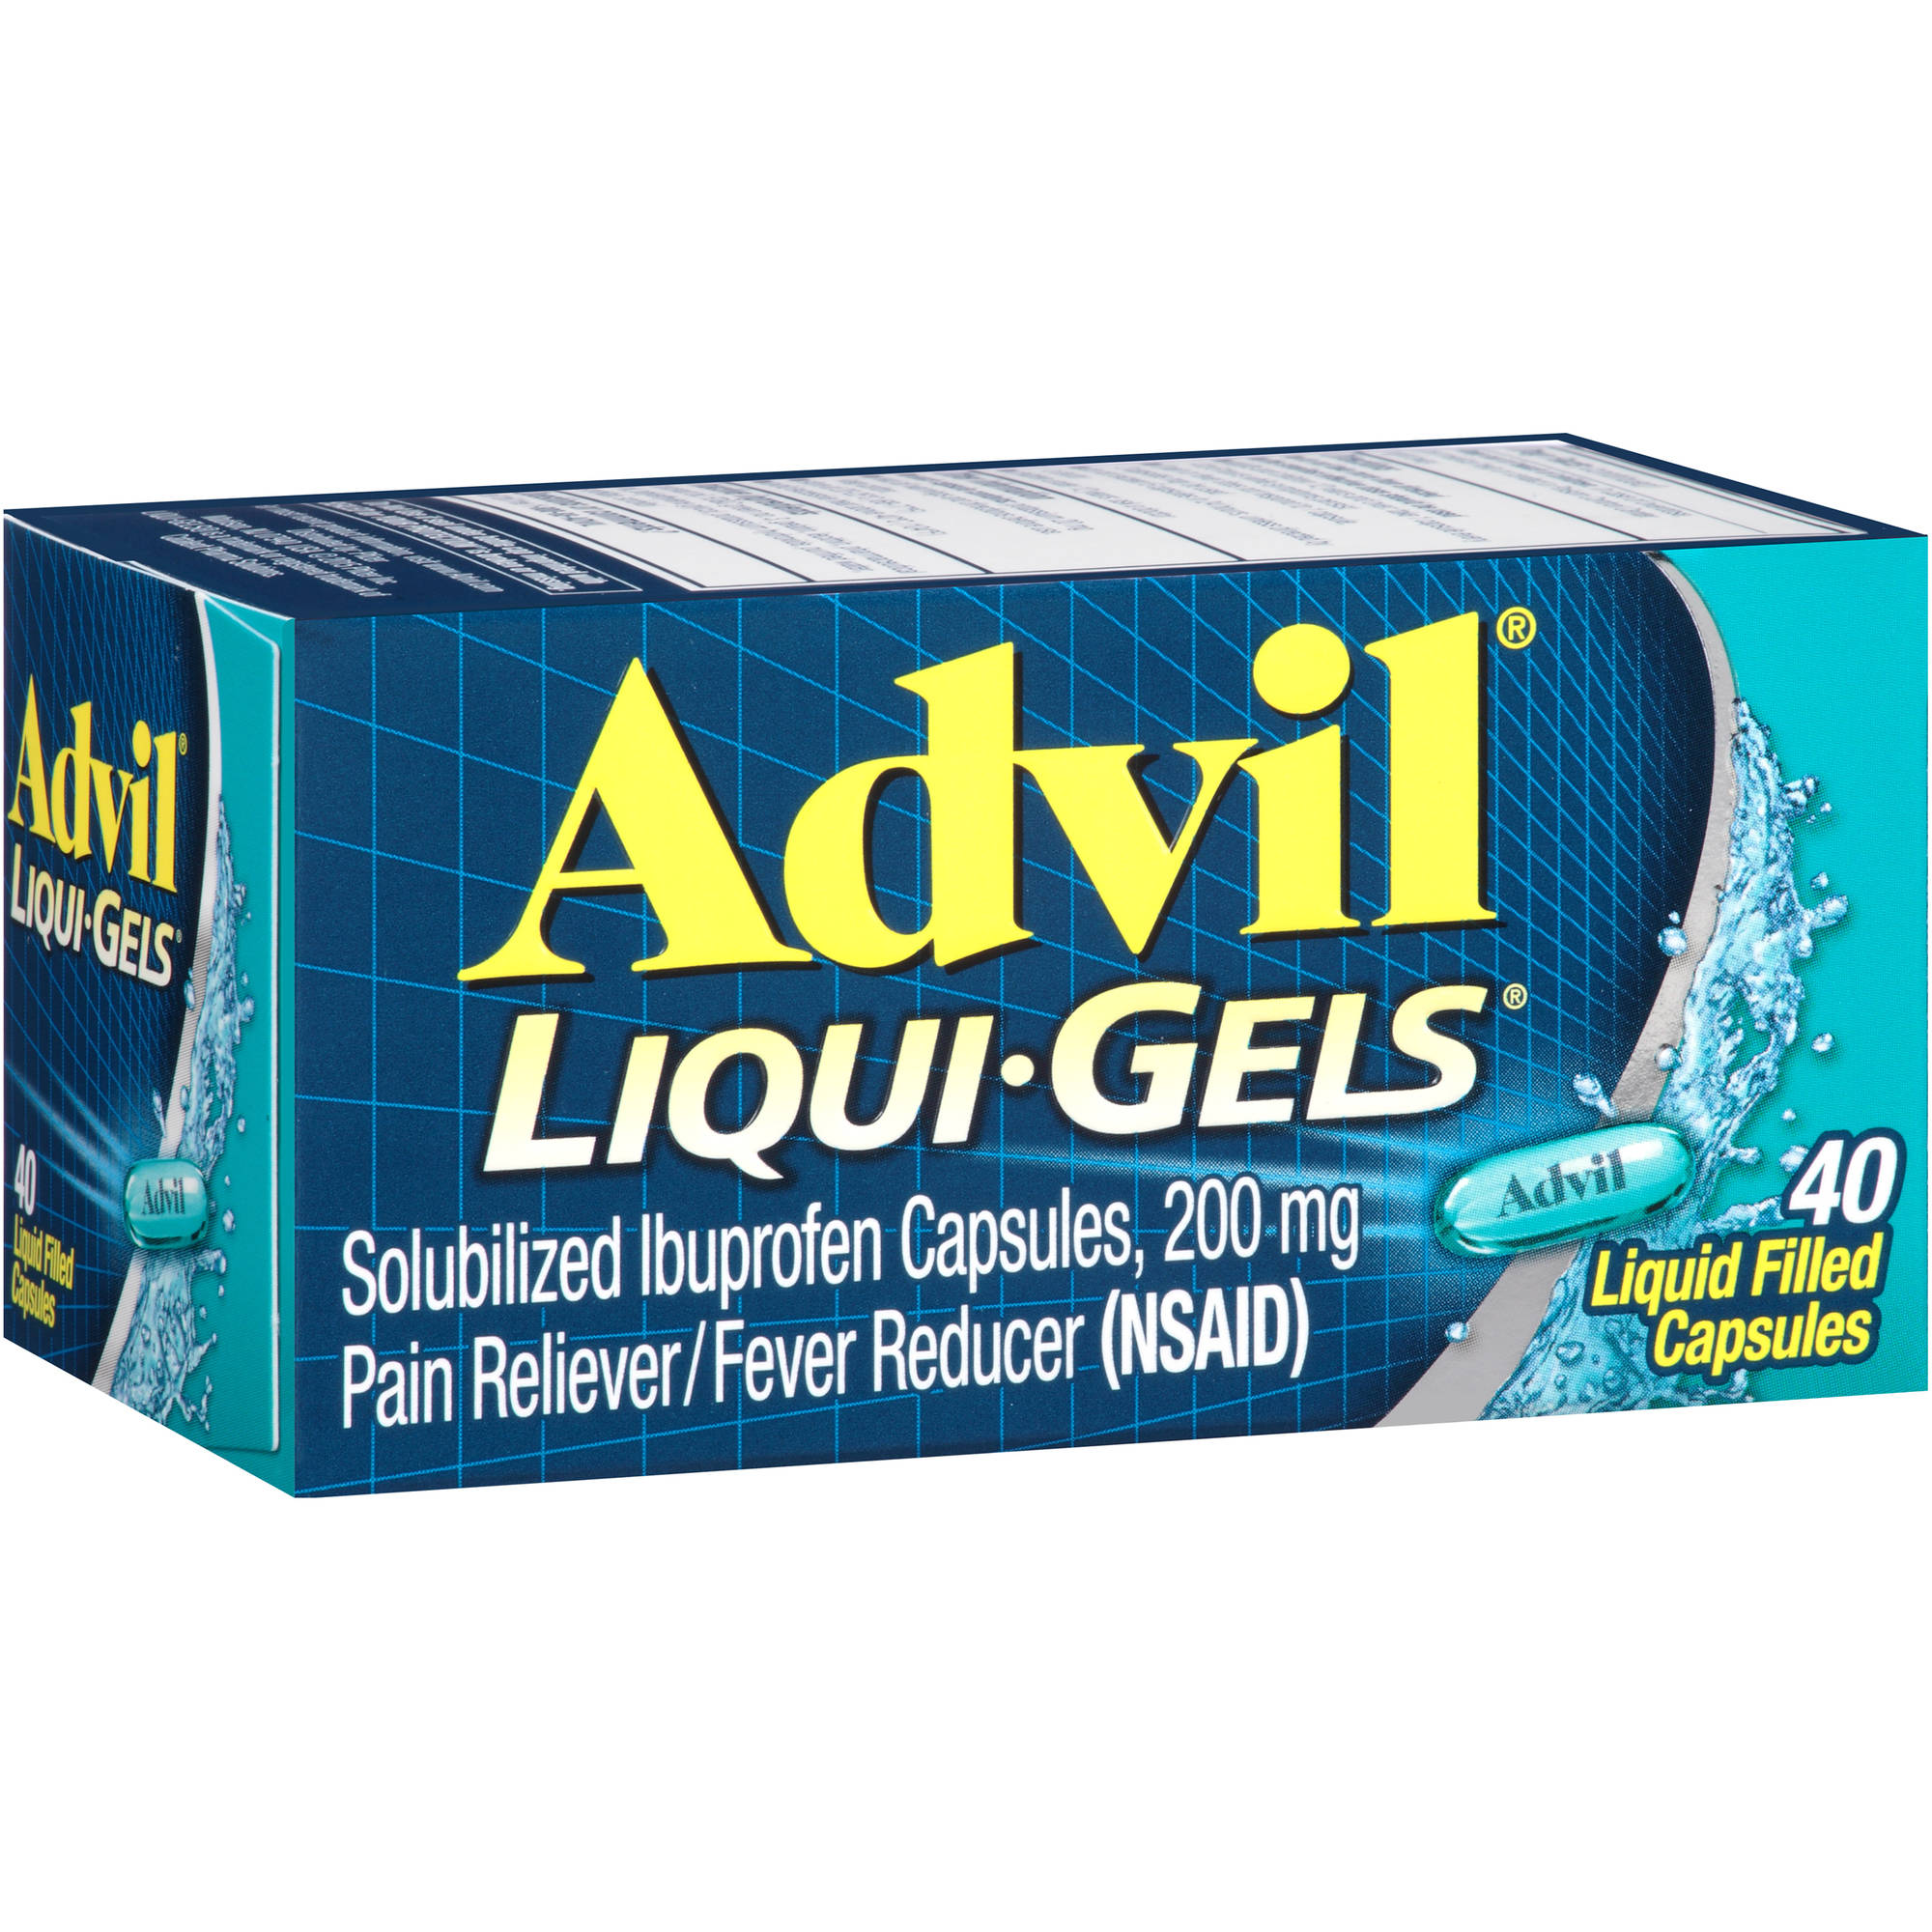 Advil Liqui-Gels Pain Reliever / Fever Reducer (Ibuprofen), 200 mg 40 count